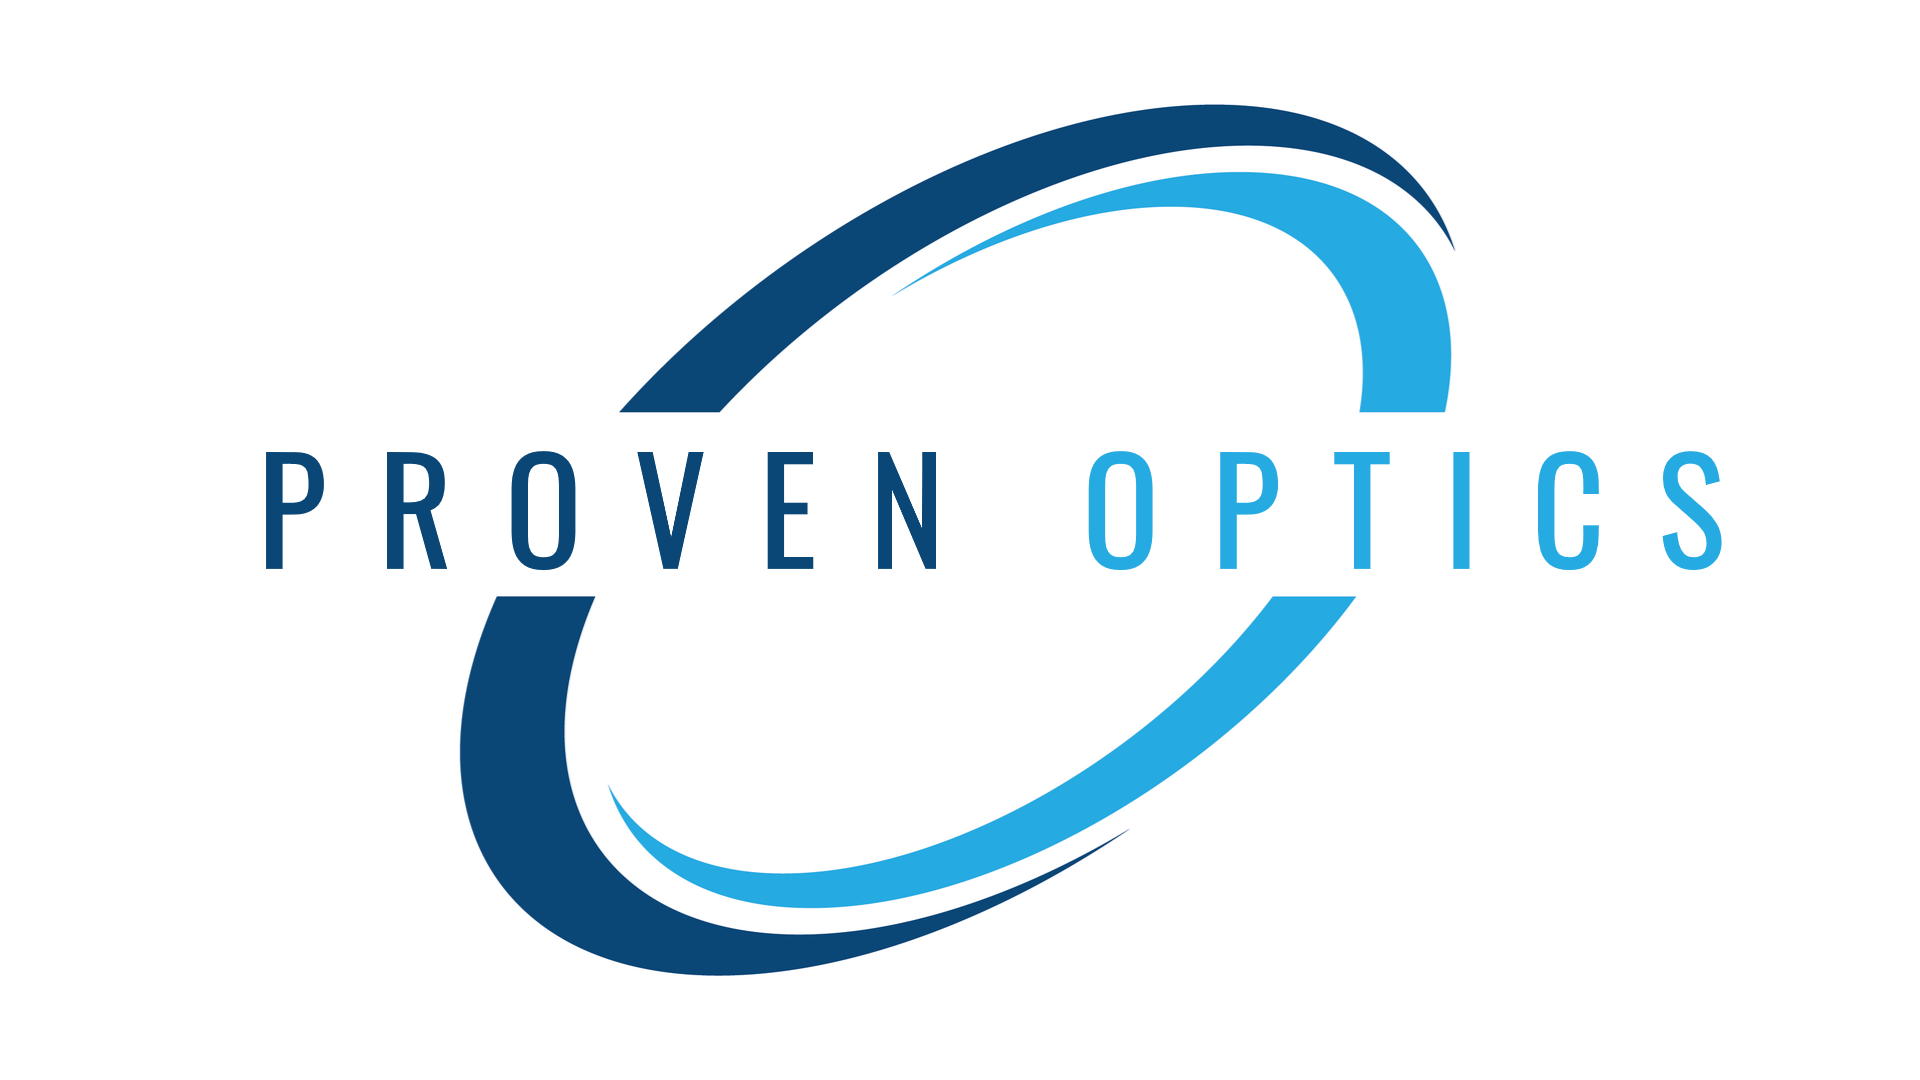 The Proven Optics Financial Management Application Suite Receives ServiceNow's Highest Certification – Built on Now